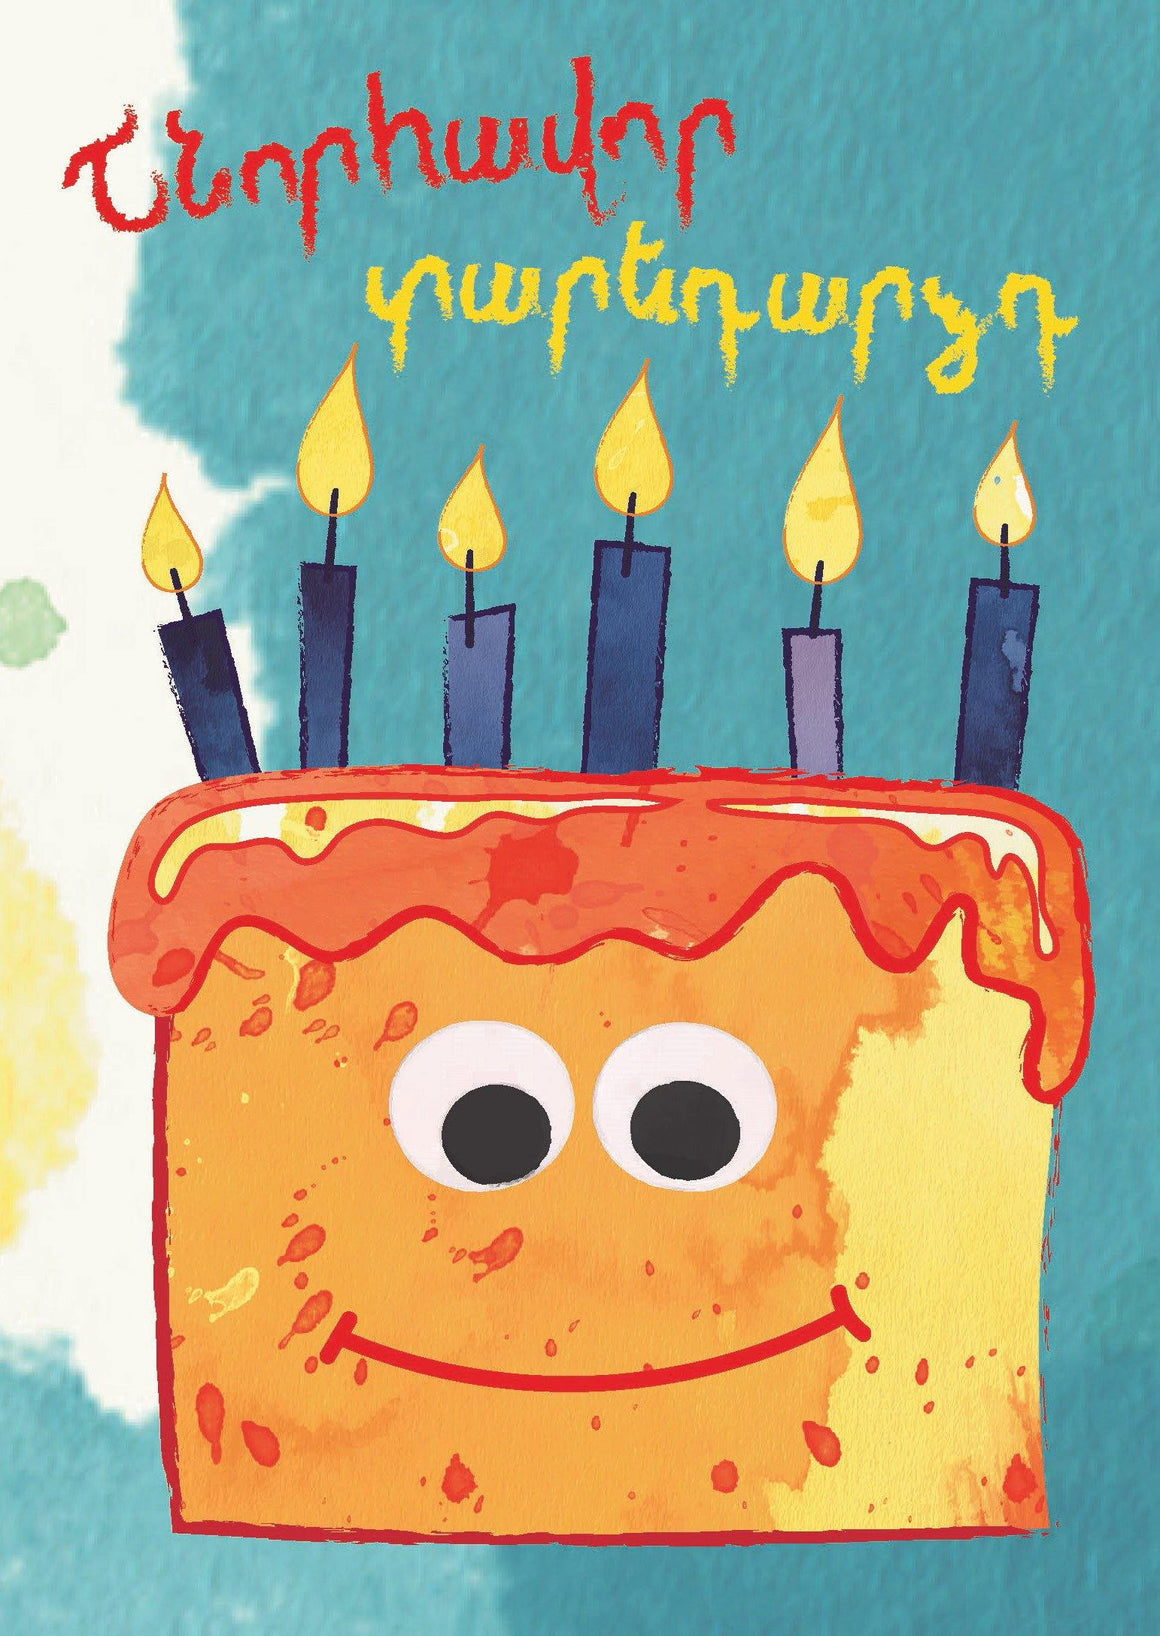 Happy Birthday Cake - Armenian Kids Club